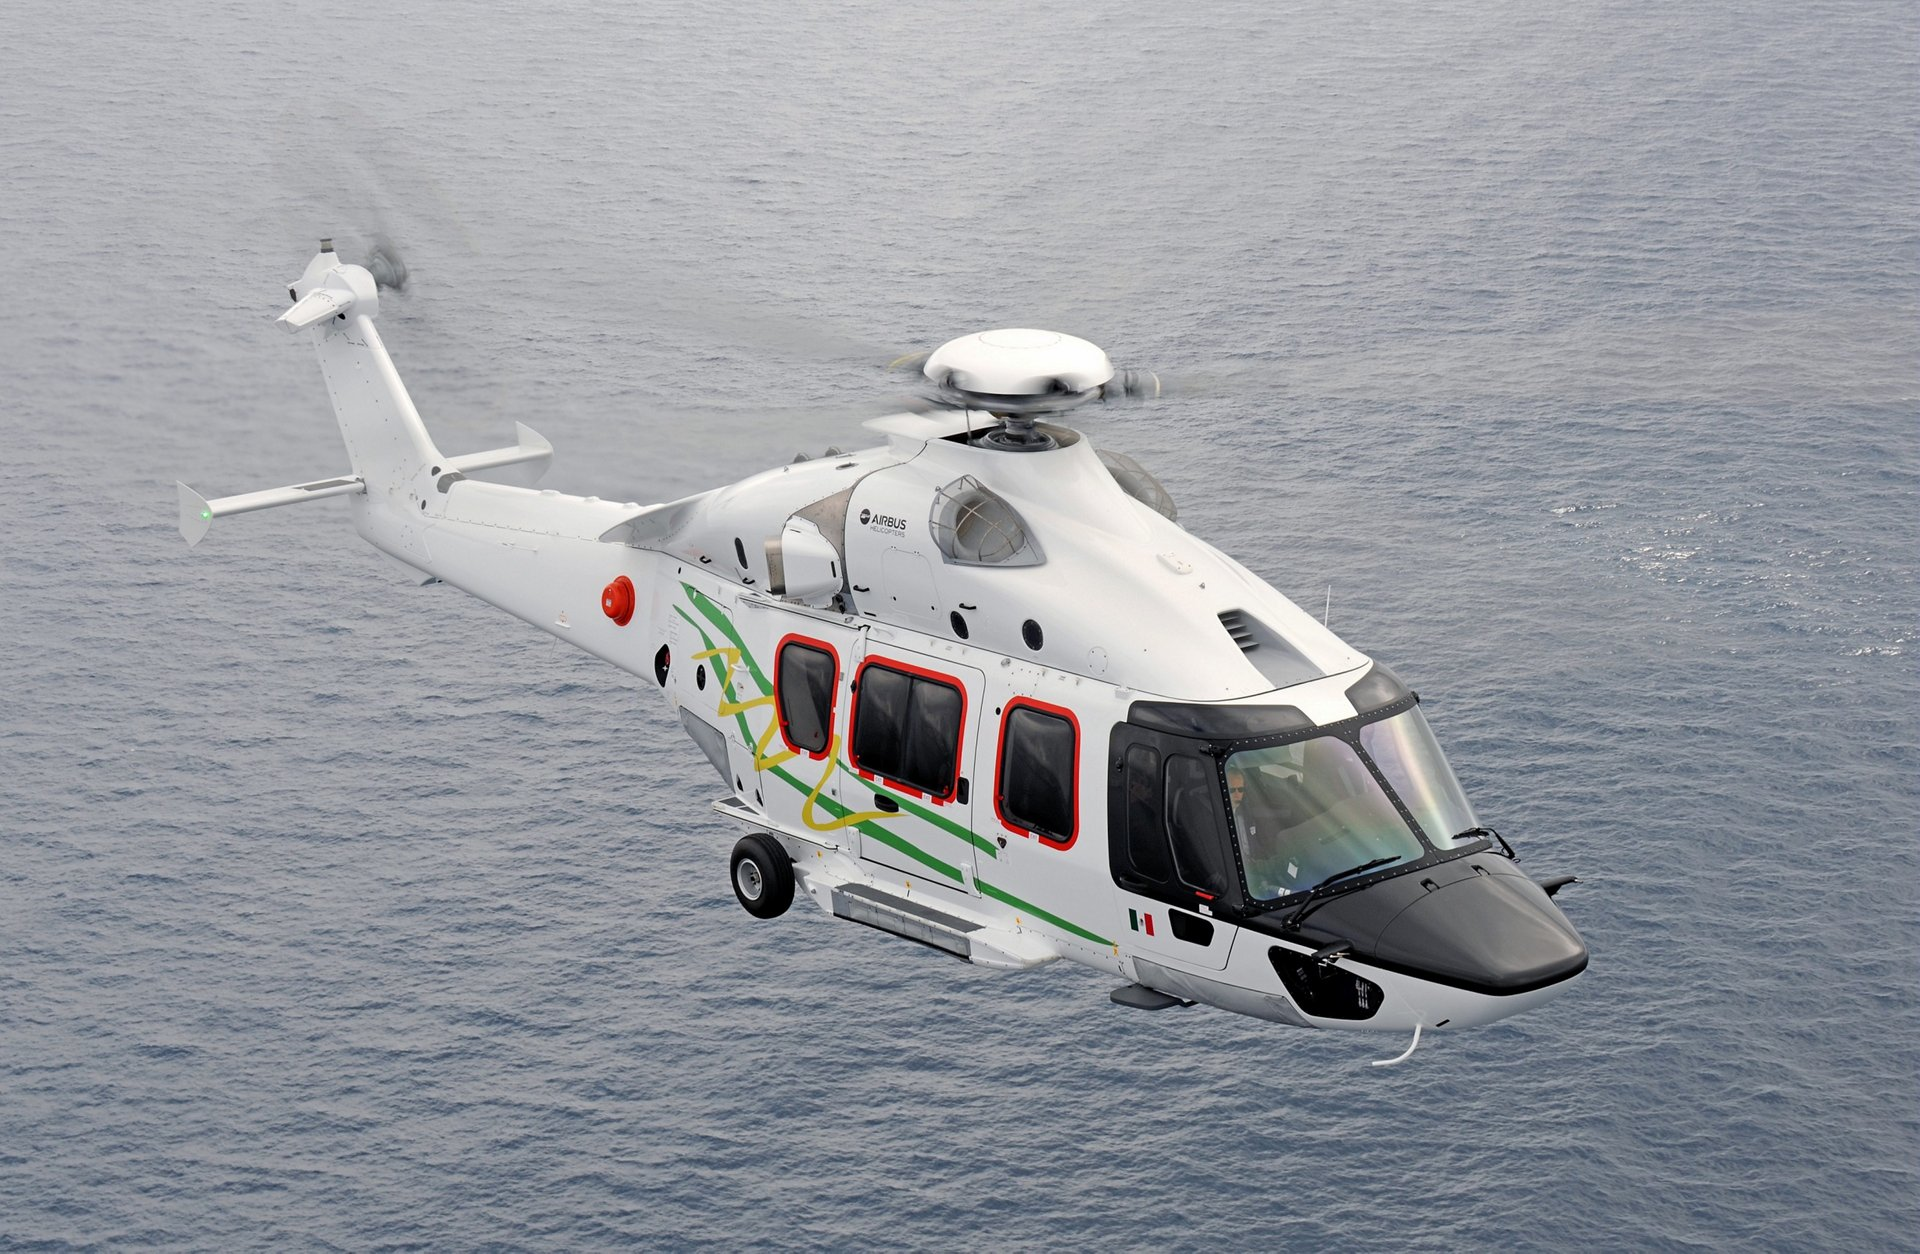 The 7-tonne class H175 (formerly known as the EC175) was developed by Airbus as its new-generation medium-sized rotorcraft, certified in accordance with the latest and most demanding regulatory requirements. Benefits include enhanced flight safety, more volume per seat for passenger comfort, mission versatility, simplified maintenance, and cost effectiveness to match customer expectations.